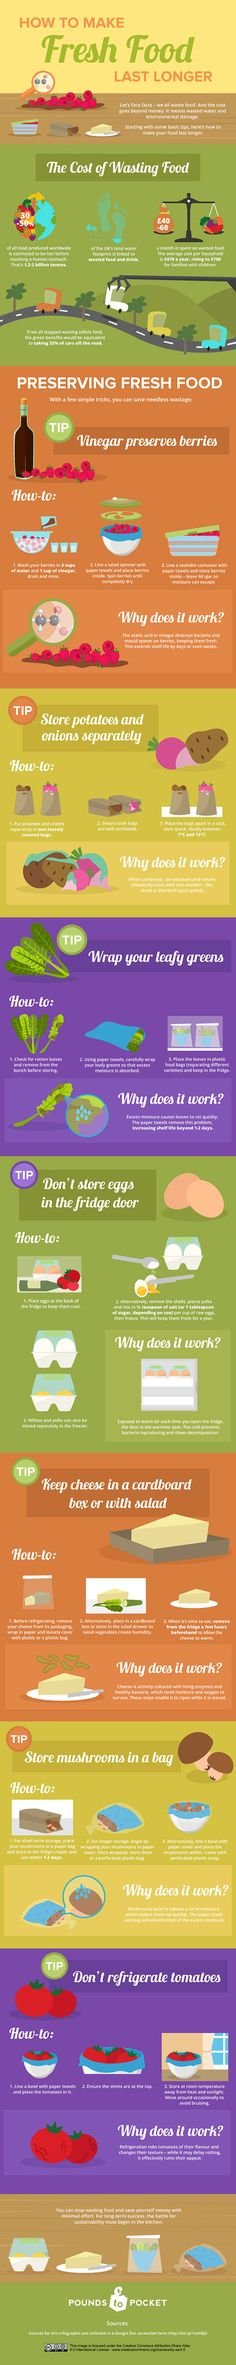 INFOGRAPHIC: Make Fresh Food Last Longer